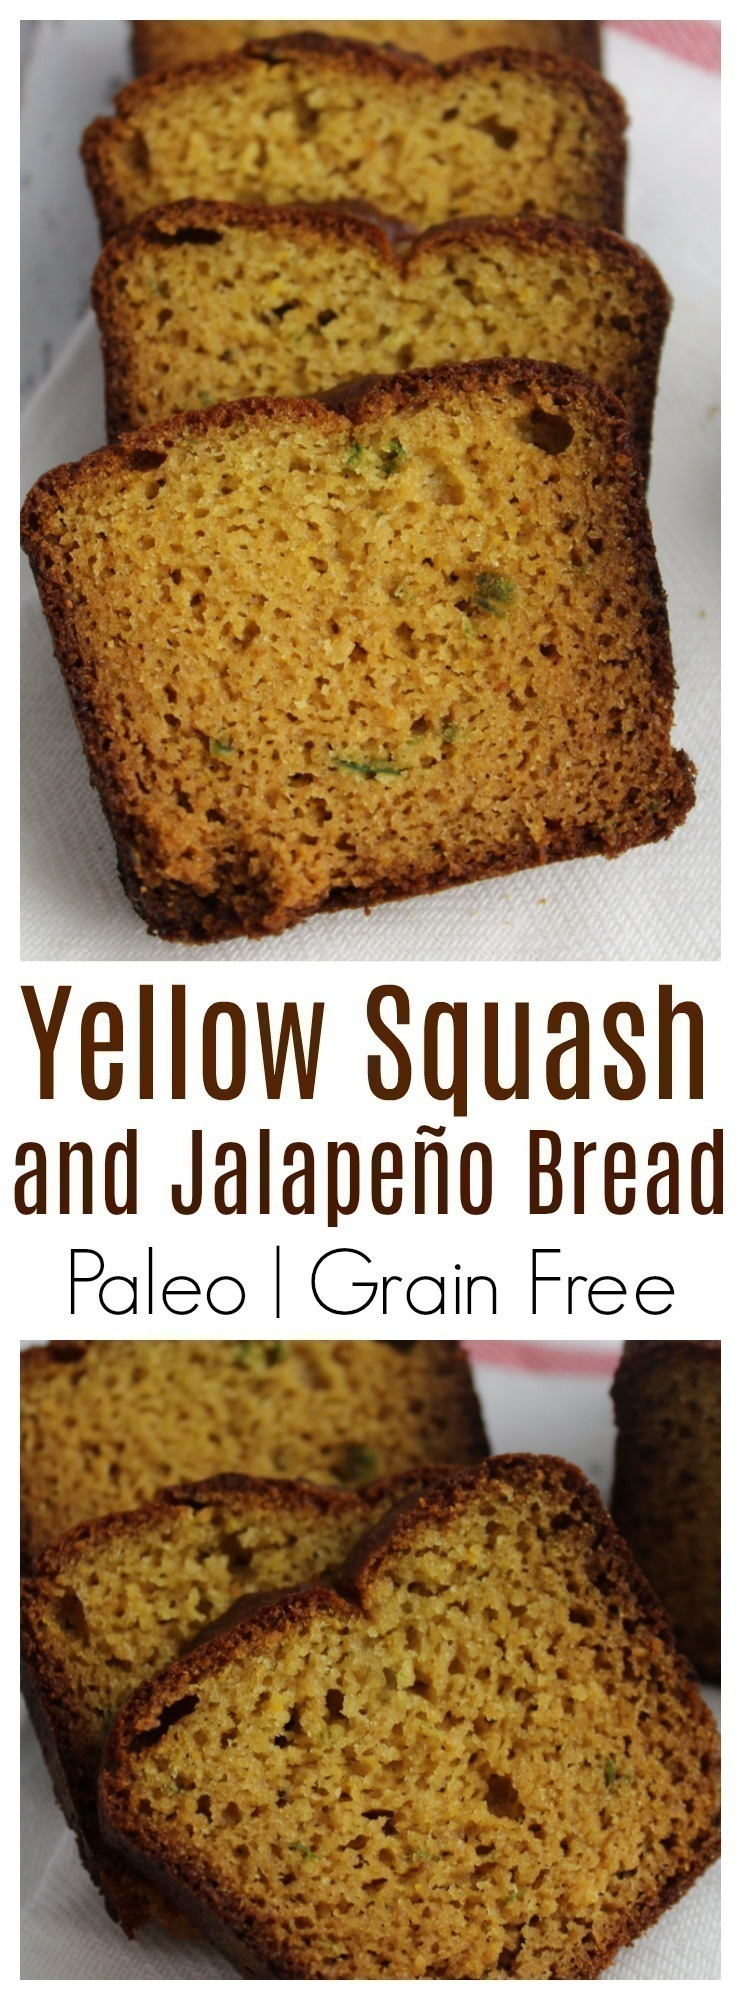 Moist and delicious paleo yellow squash and jalapeño bread with simple ingredients and sweetened with maple syrup.